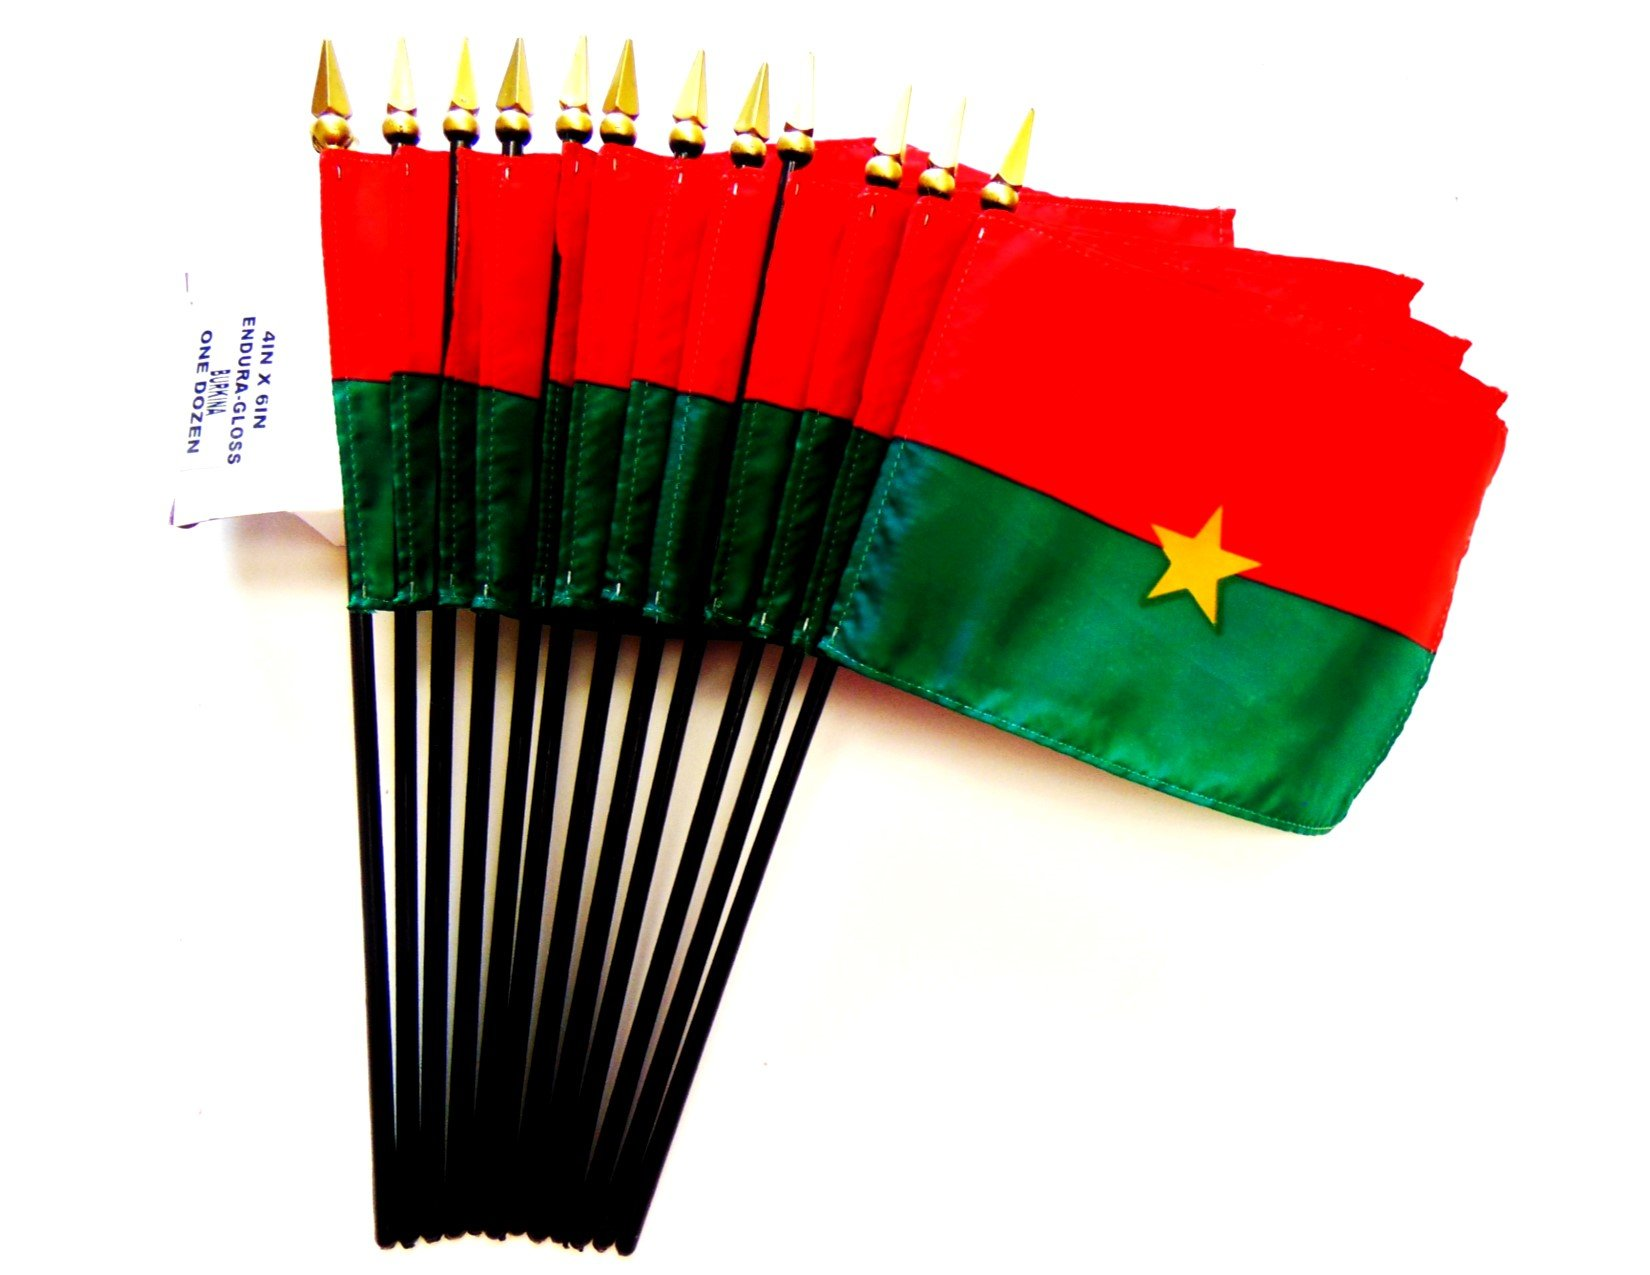 Made in USA!! Box of 12 Burkina Faso 4''x6'' Miniature Desk & Table Flags; 12 American Made Small Mini Burkinabe Flags in a Custom Made Cardboard Box Specifically Made for These Flags